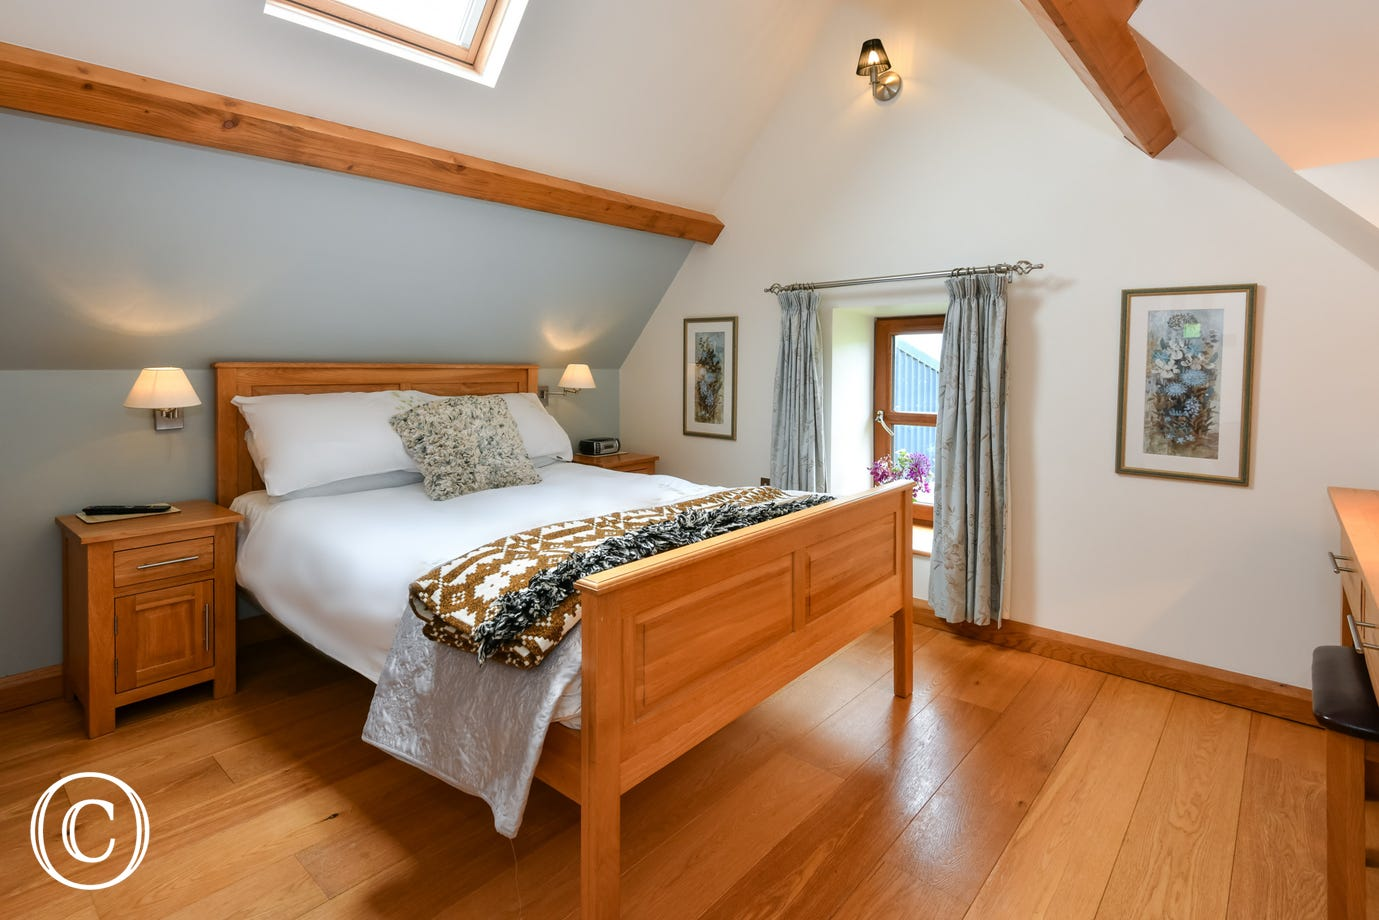 Llyn Peninsula self catering holidays: oak furniture & flooring throughout